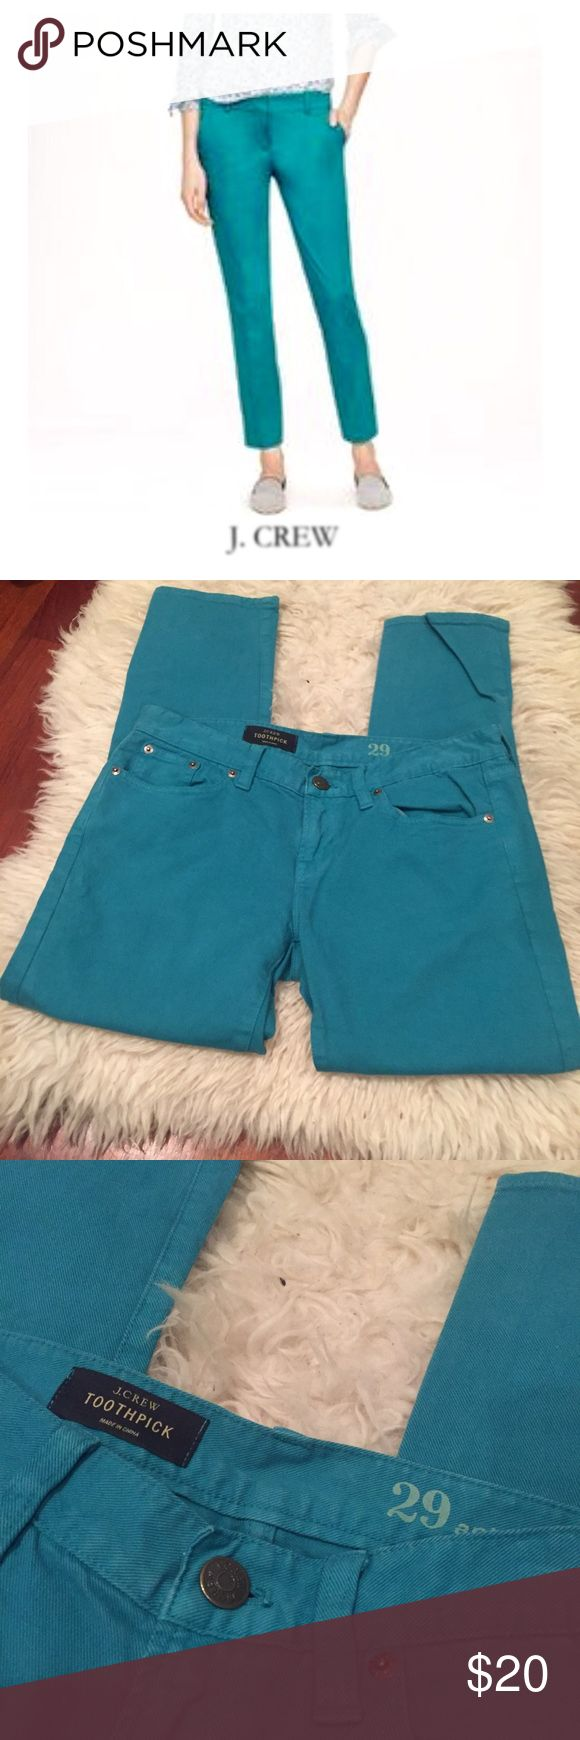 """J. Crew Skinny Garment Dyed Ankle Jeans J. Crew Skinny Garment Dyed Ankle Jeans. 8"""" rise. 28"""" rise. Size 29 which is an 8. Color is like an aquamarine, I think they call it green online, but want to share it is more aquamarine color. Gently worn. Great condition. Feel free to make an offer or bundle & save! J. Crew Jeans Skinny"""